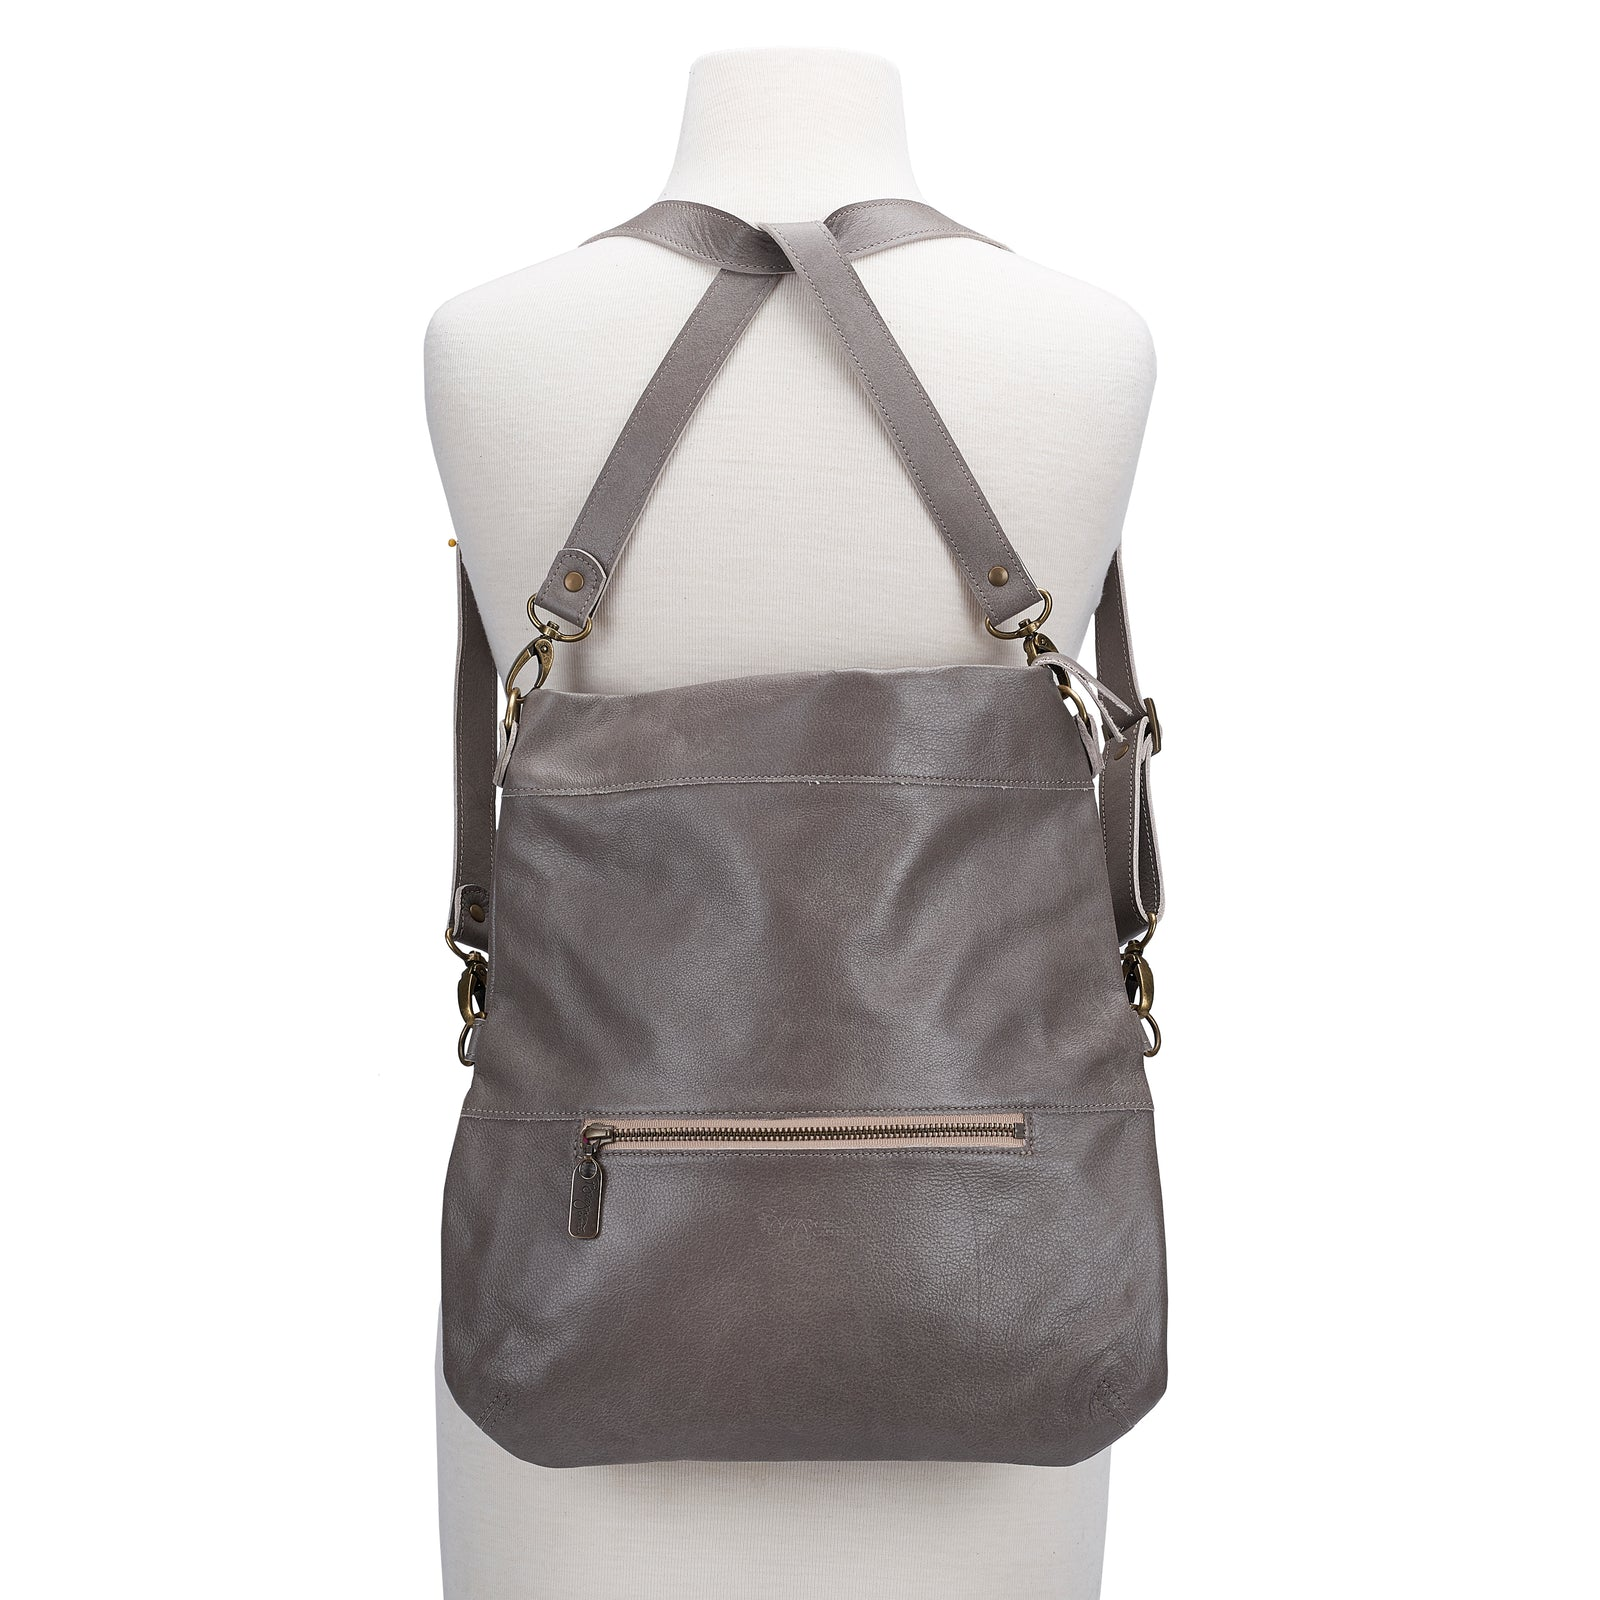 Mini-Lauren Crossbody - Stone Temple - Brynn Capella, Medium Crossbody